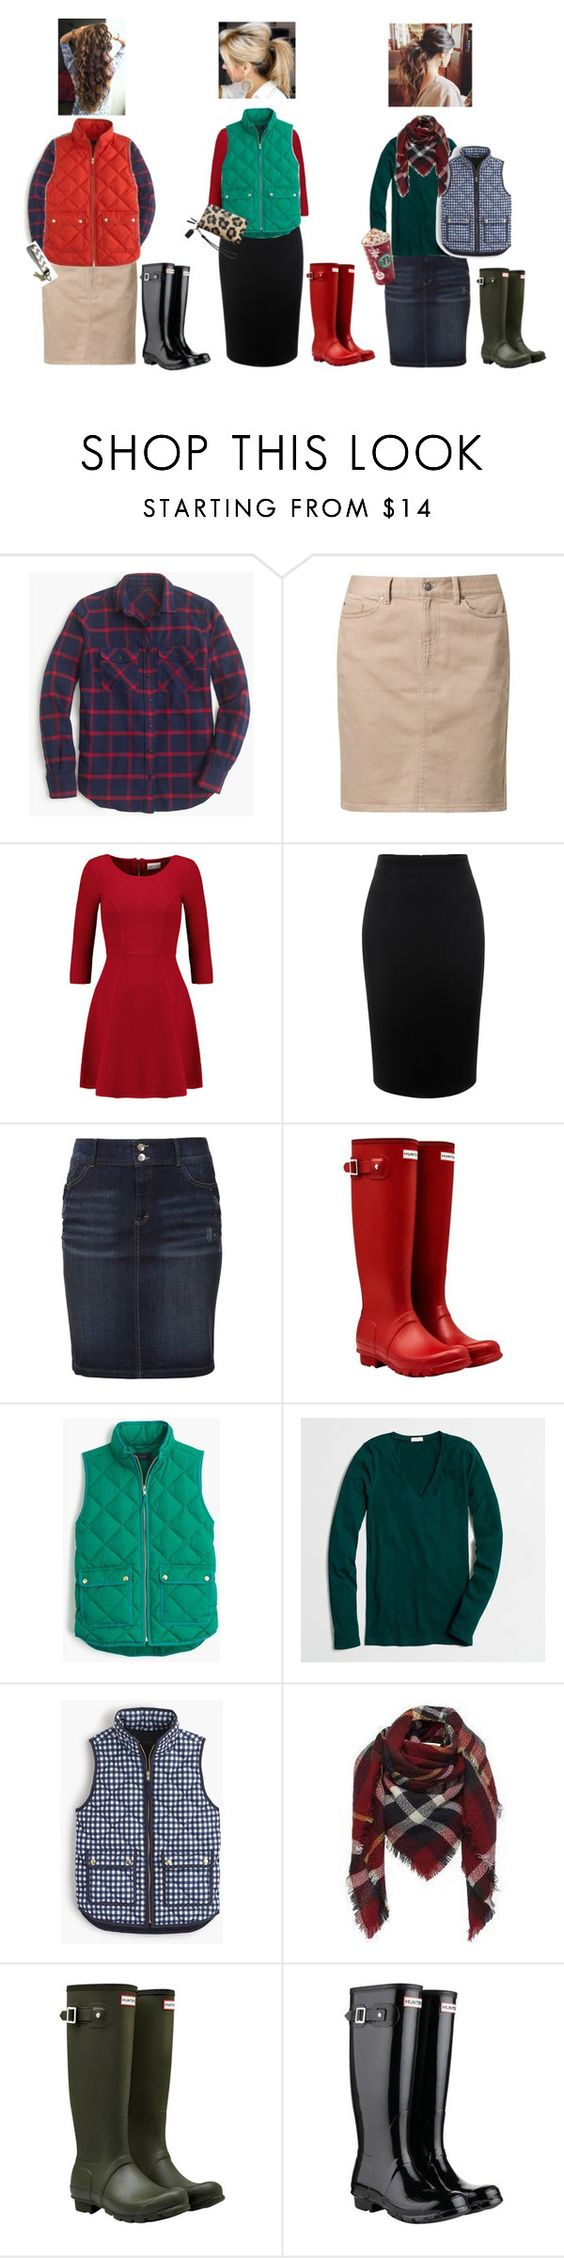 """Vest & Boots"" by showcow9 ❤ liked on Polyvore featuring J.Crew, Tommy Hilfiger, Milly, Alexander McQueen, s.Oliver, Hunter and Coach"